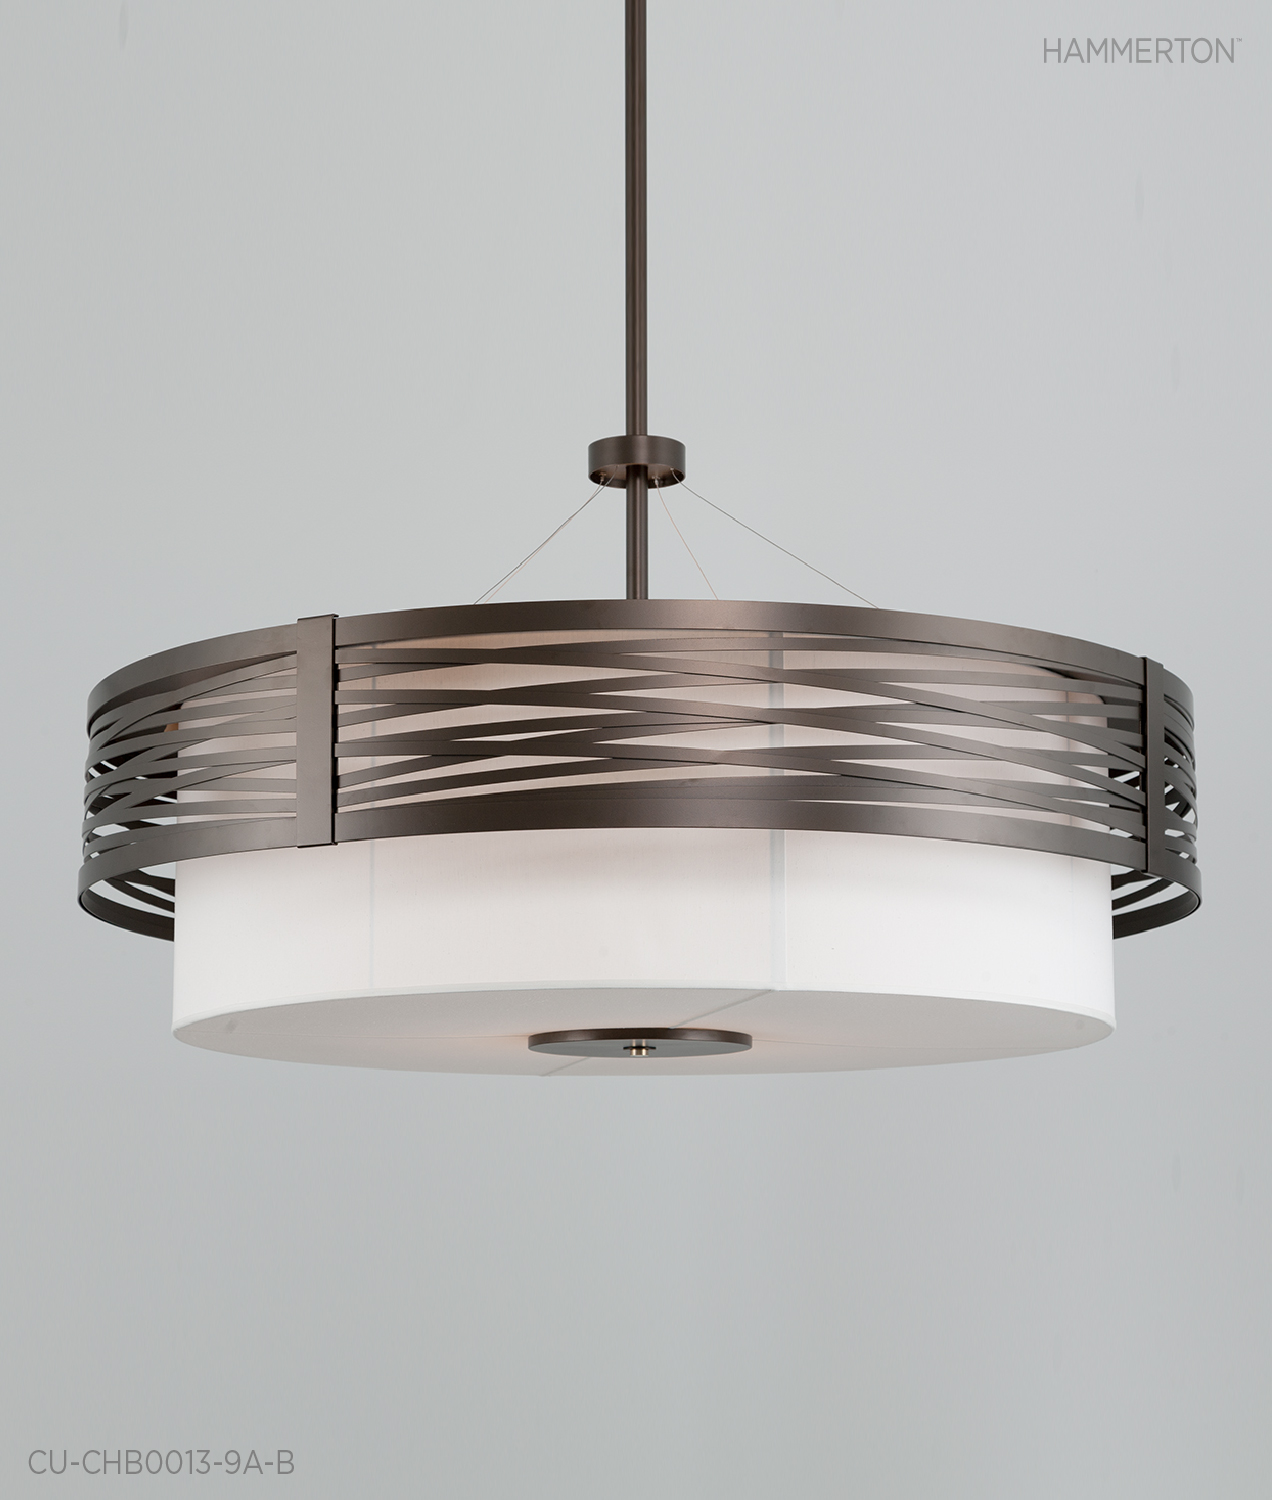 An enormous 6 ft dia custom Tempest chandelier with Flat Bronze Metallic finish. The custom fabric shade in Regal Ivory provides a soft contrast against the metal work.  Fixture: CU-CHB0013-9A-B